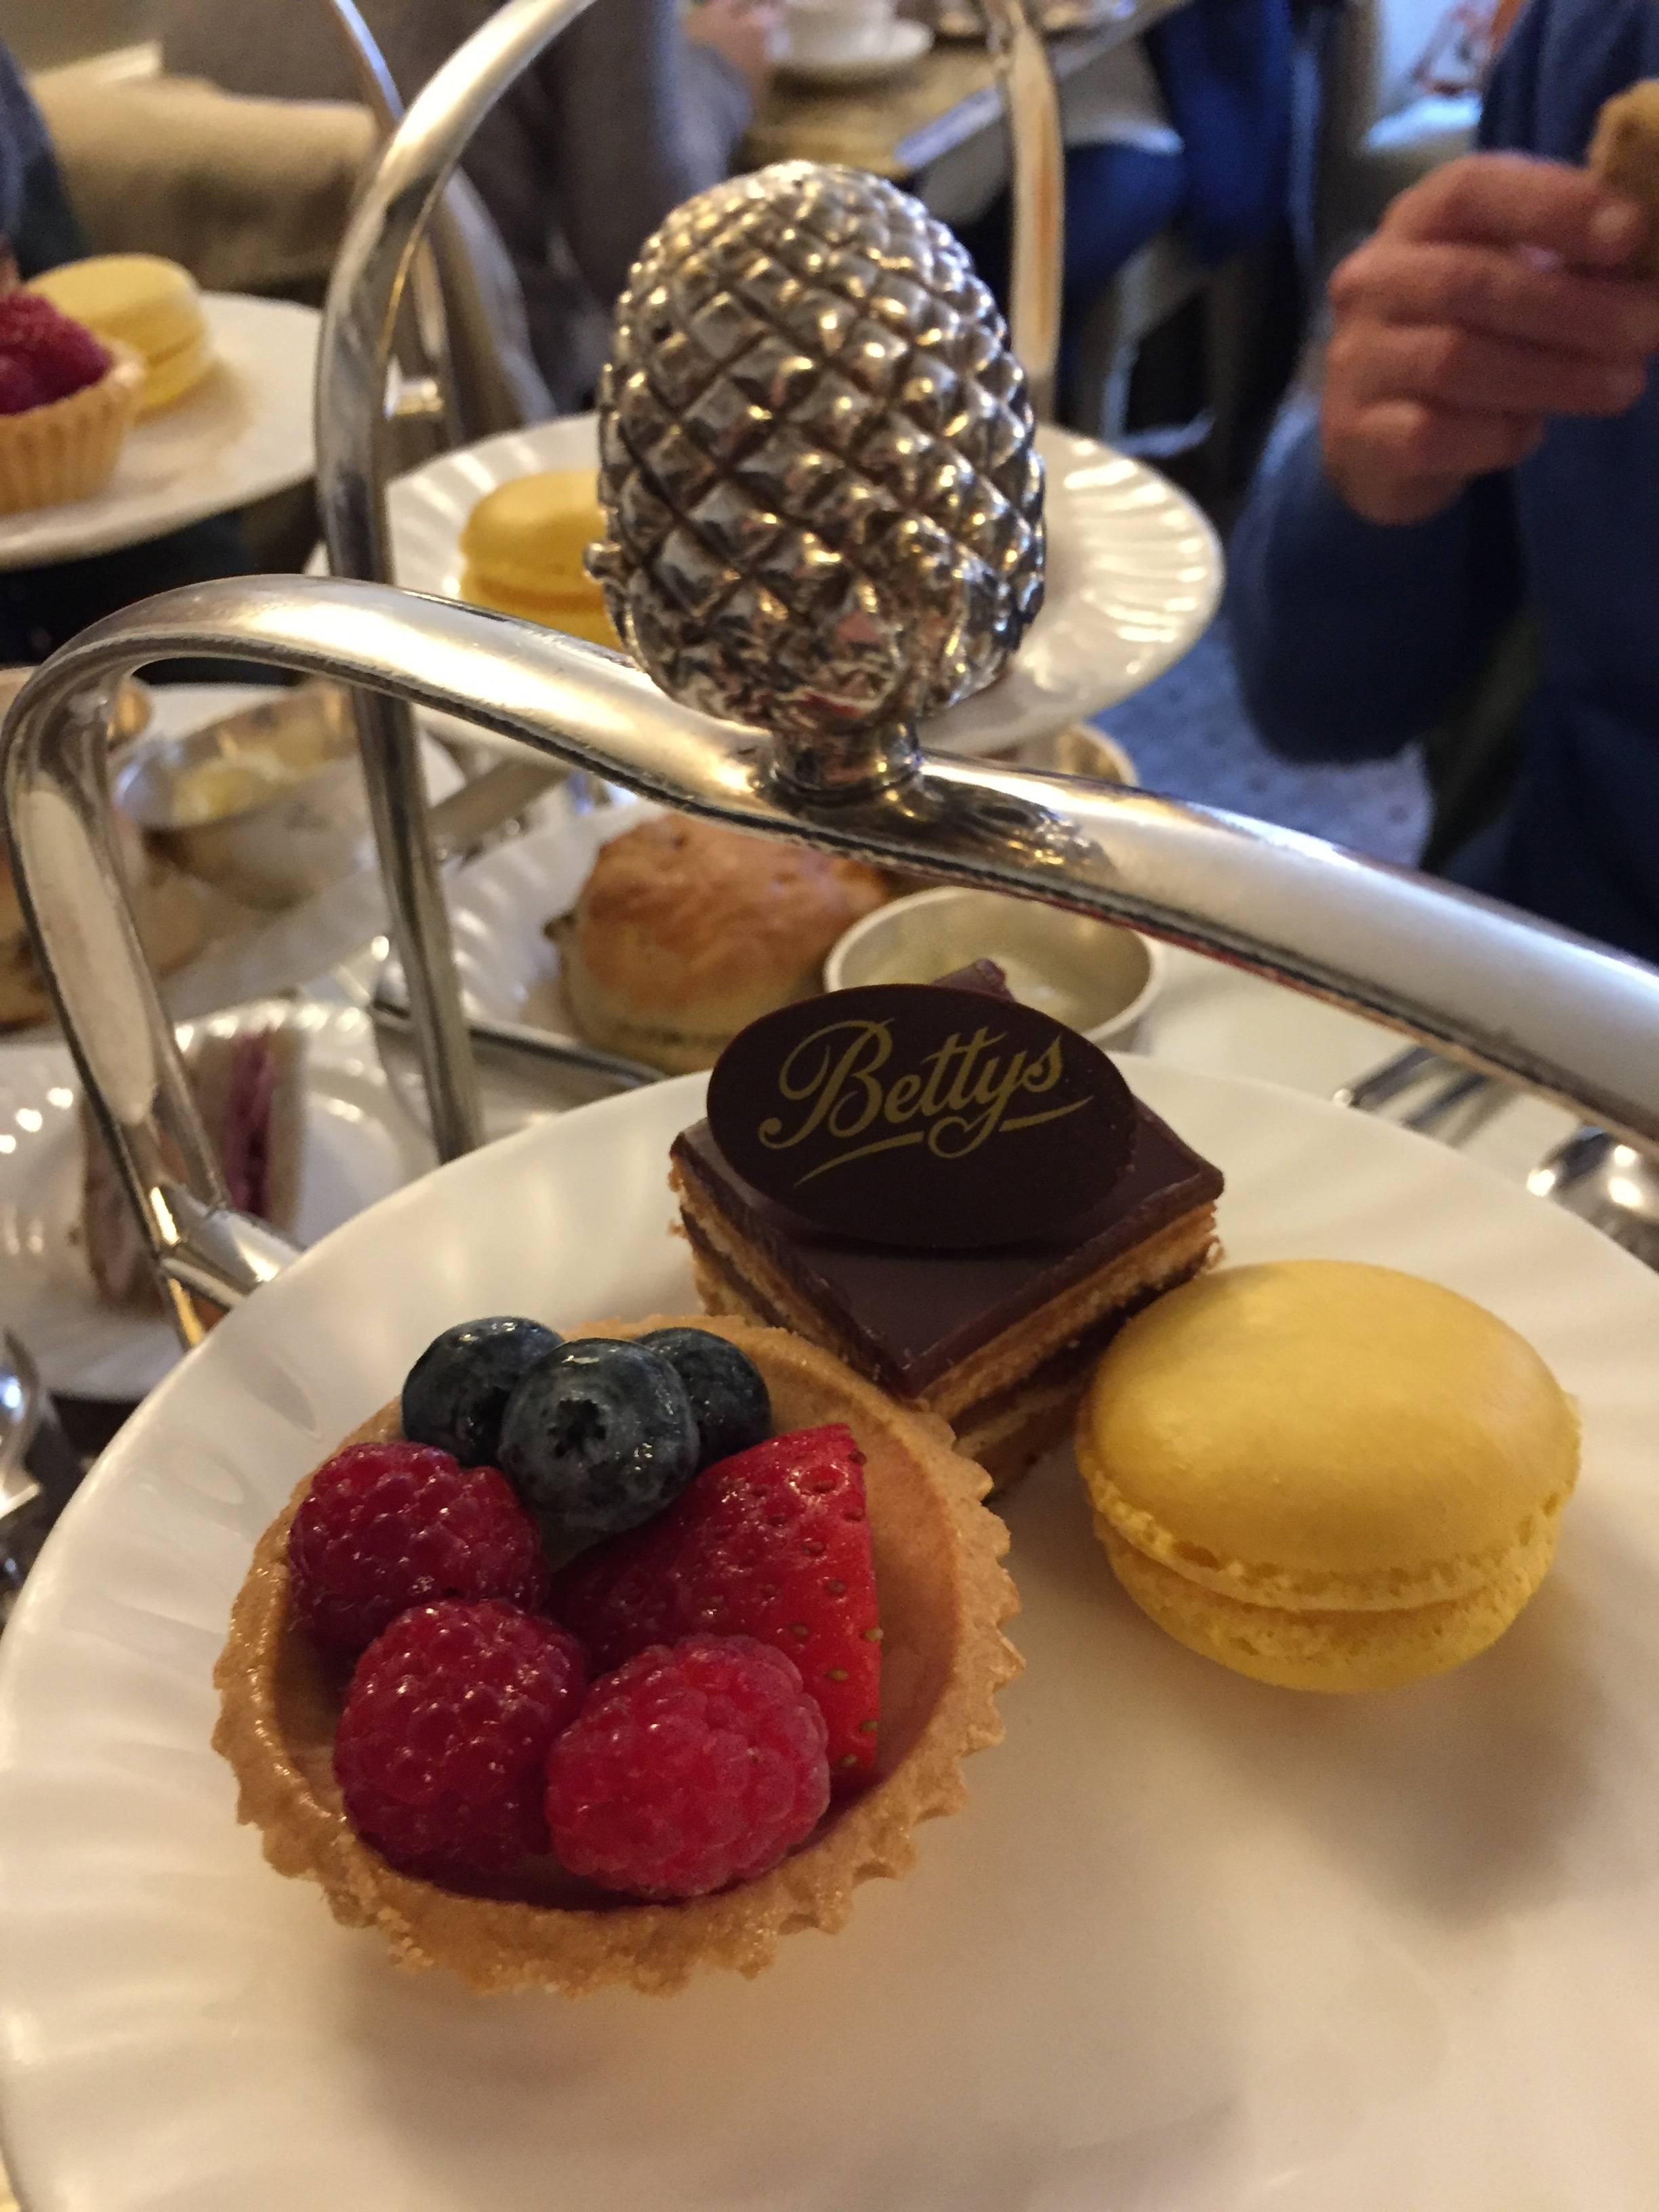 Afternoon tea at Bettys in York